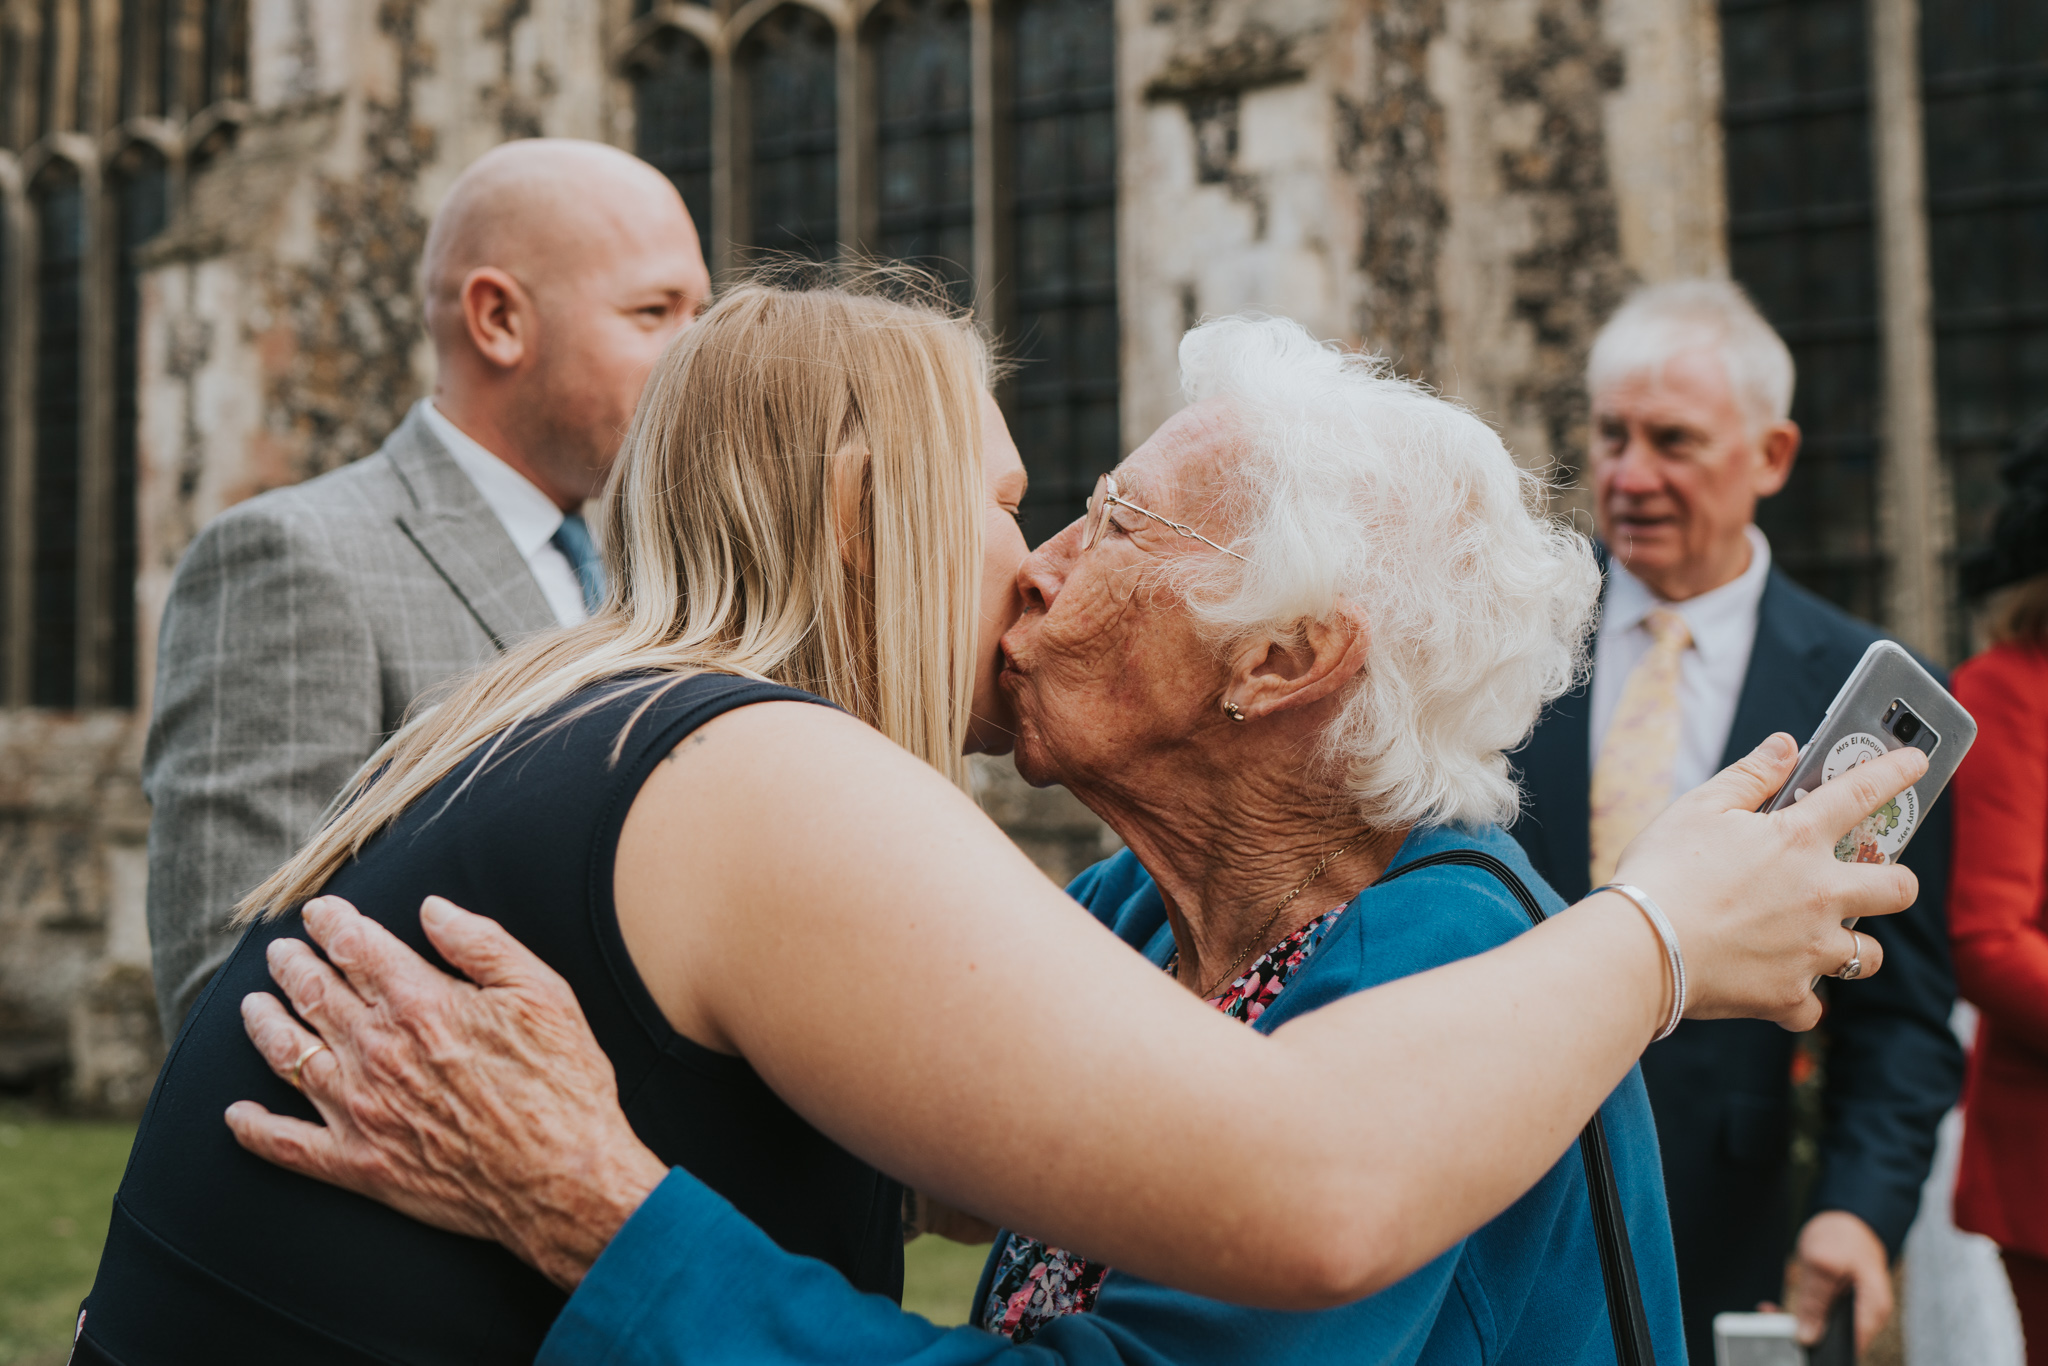 intimate-english-church-wedding-sarah-alex-colchester-essex-grace-elizabeth-colchester-essex-alternative-wedding-lifestyle-photographer-essex-suffolk-norfolk-devon (69 of 92).jpg